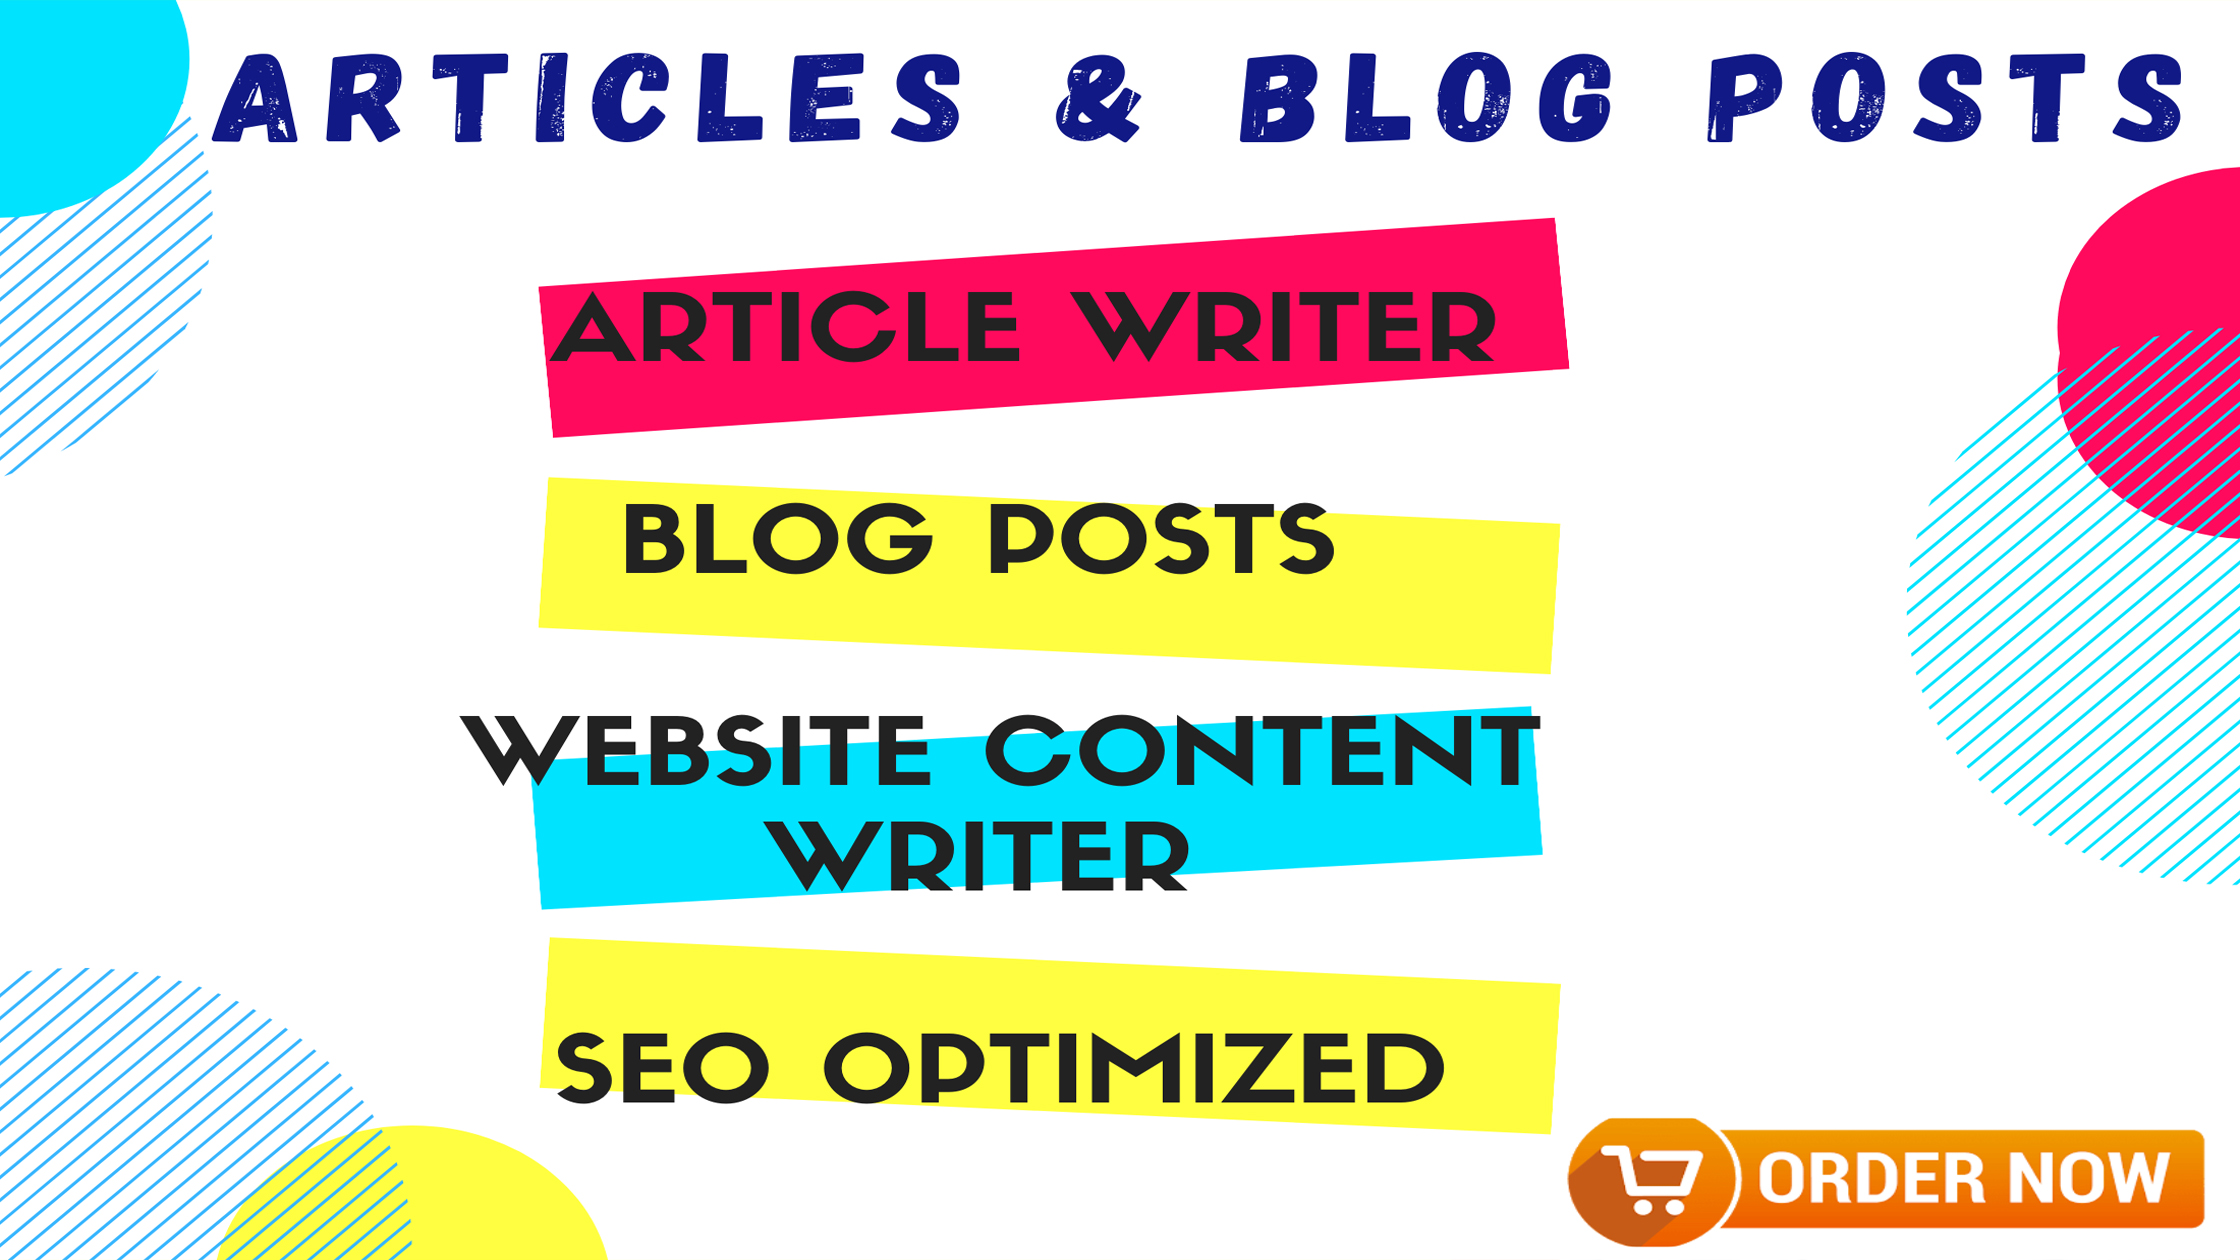 I Will 500 Words Article Writing and Blog Posts SEO Optimized